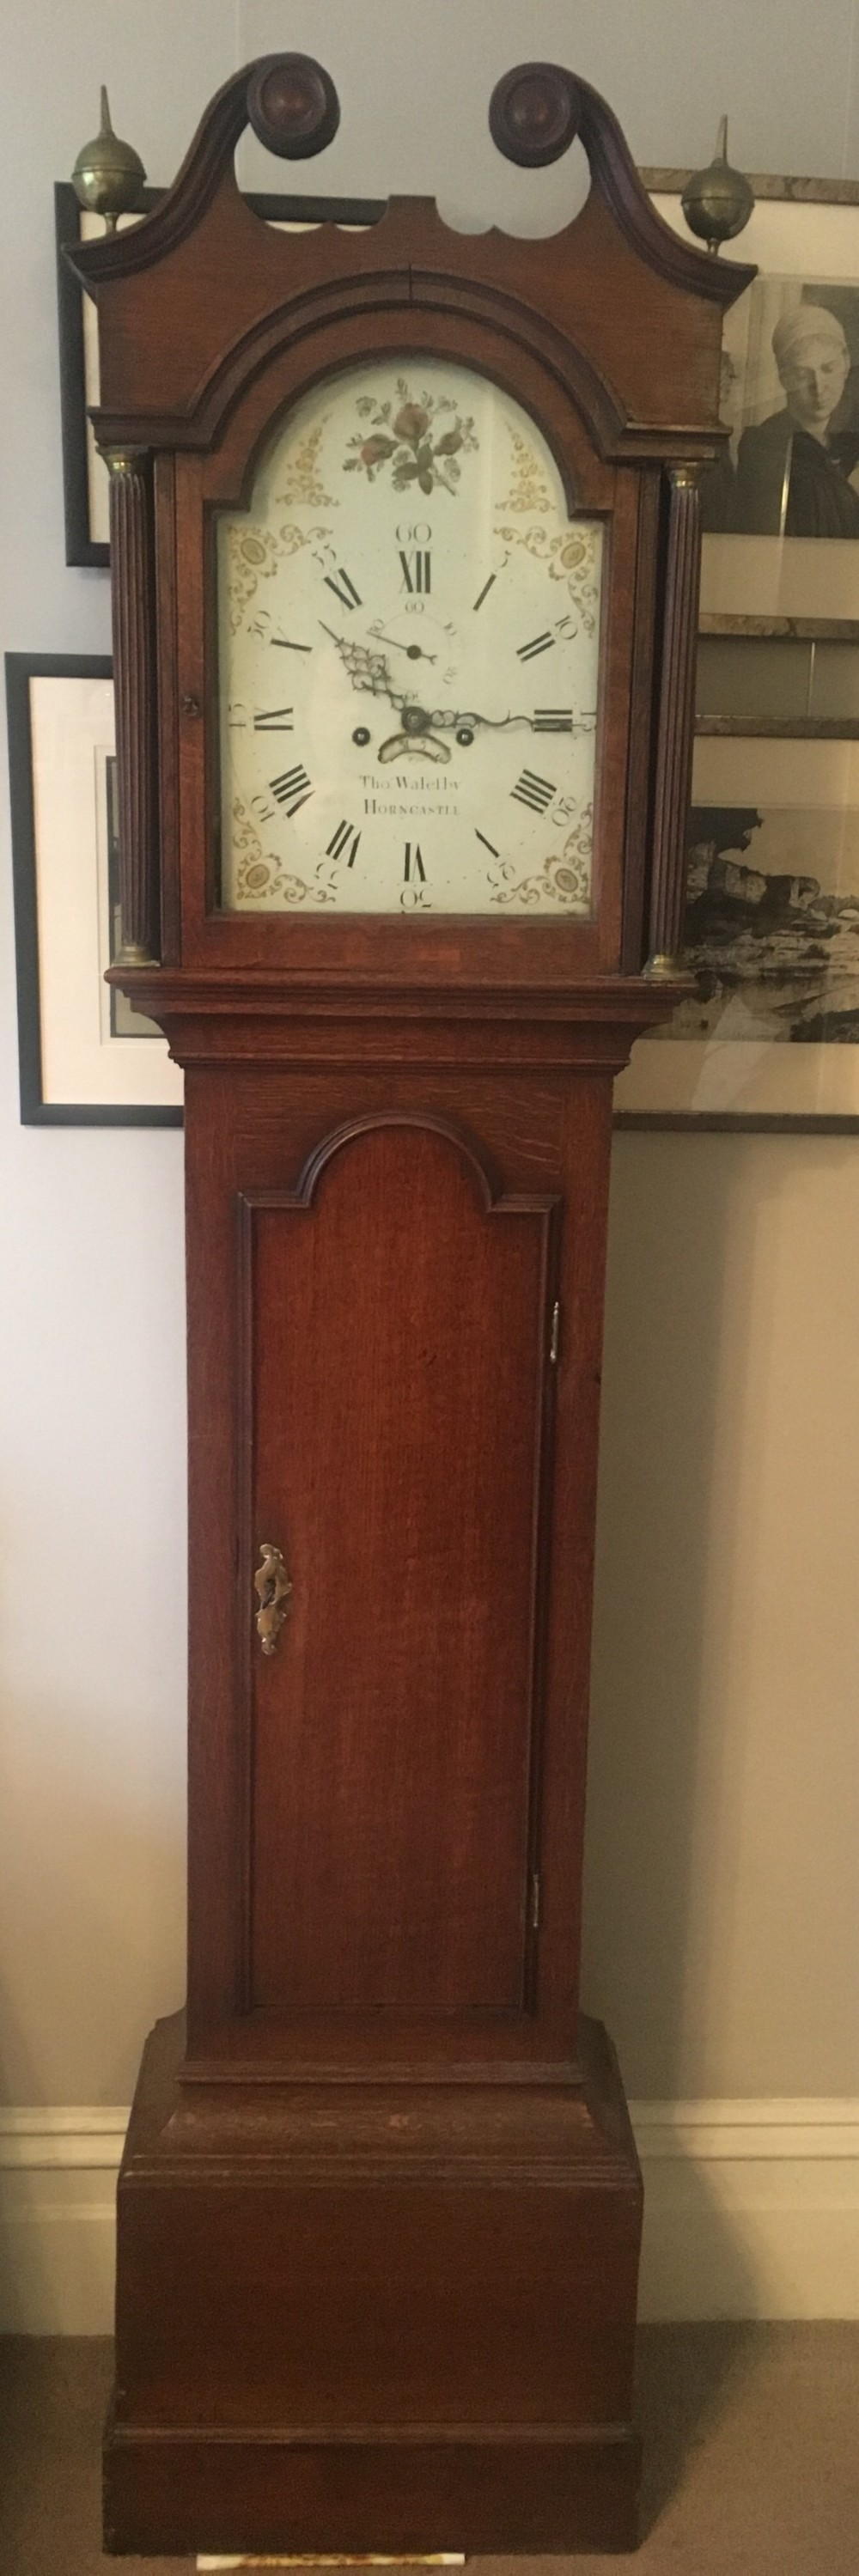 c18th longcase clock by thomas walesby of horncastle